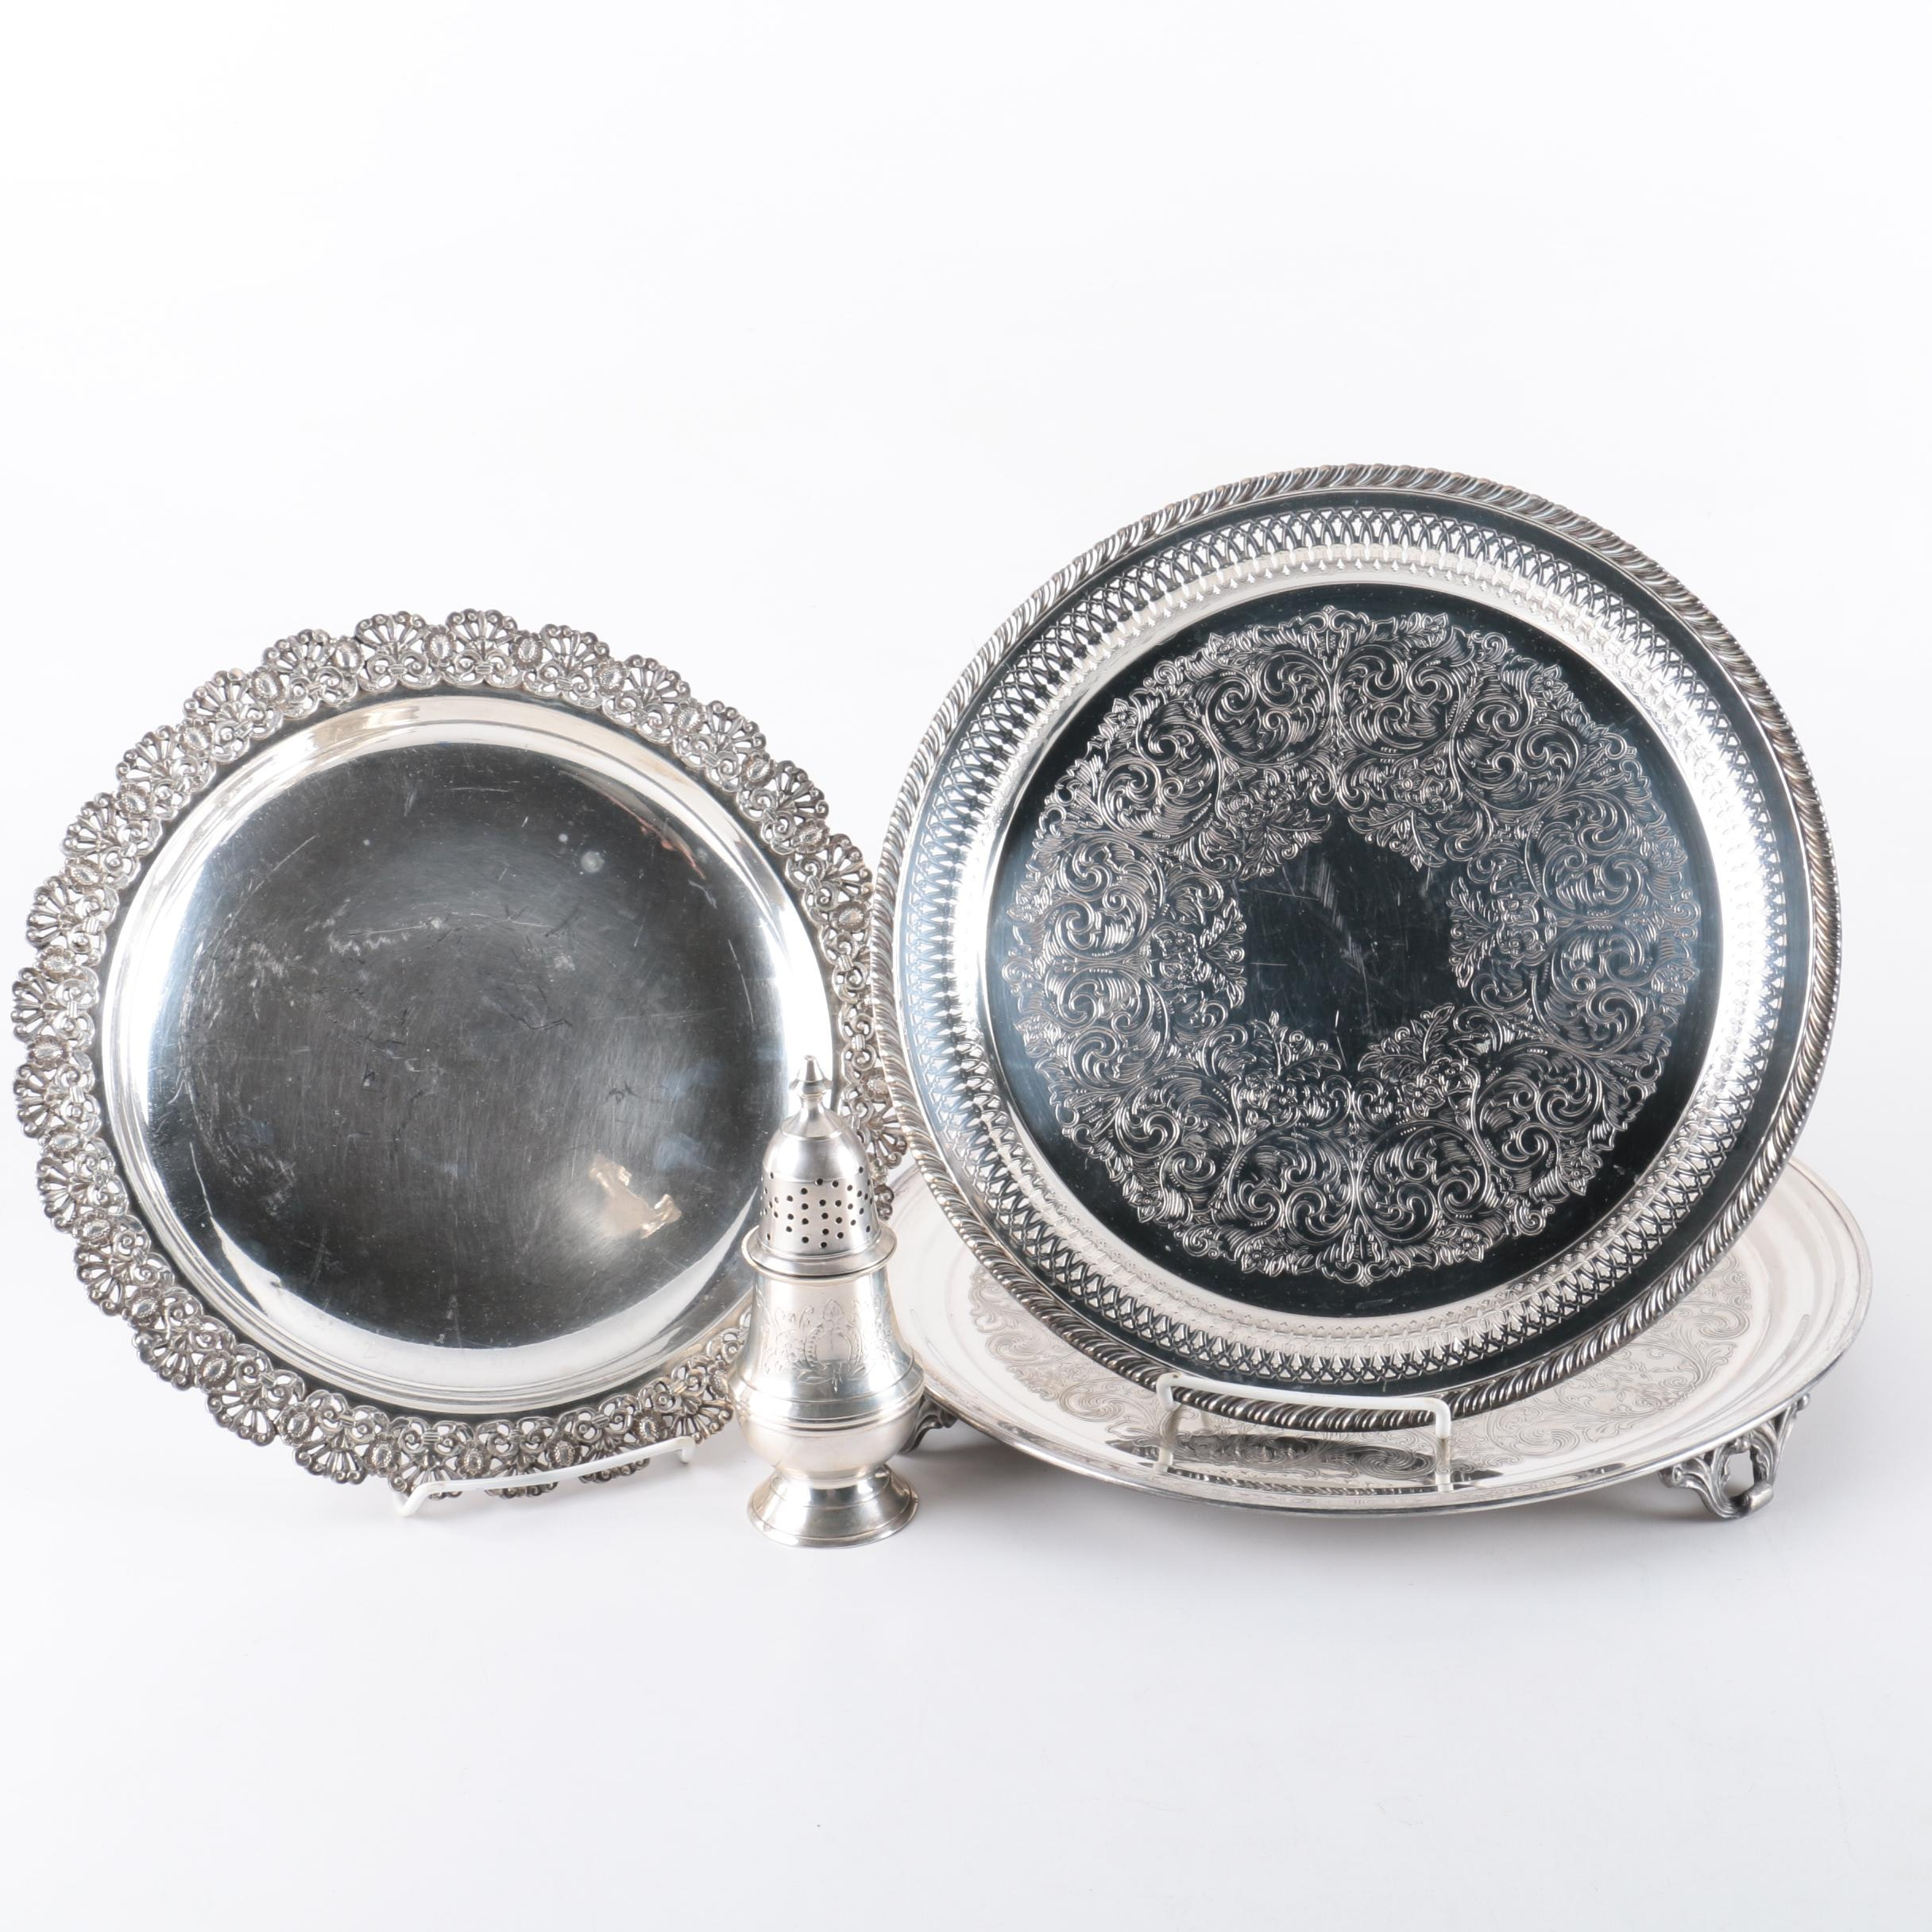 Egyptian 800 Silver Tray with Silver Plate Trays and Muffineer Sugar Shaker